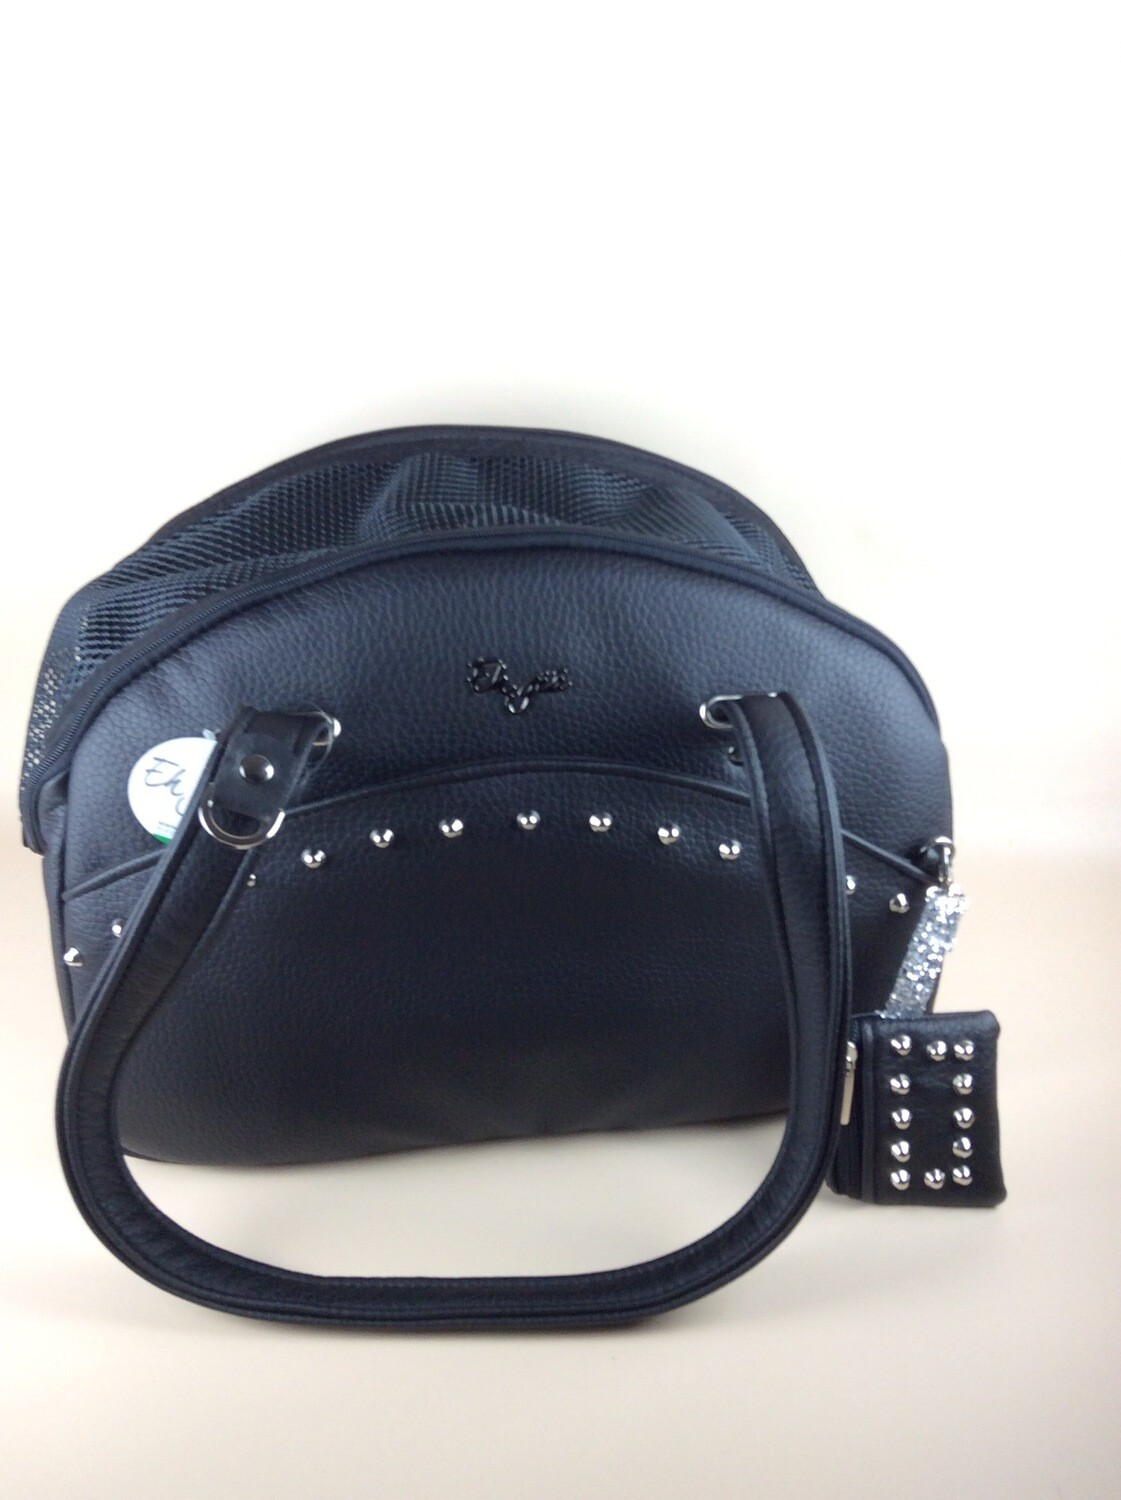 Traveller bag black with studs + waste bag